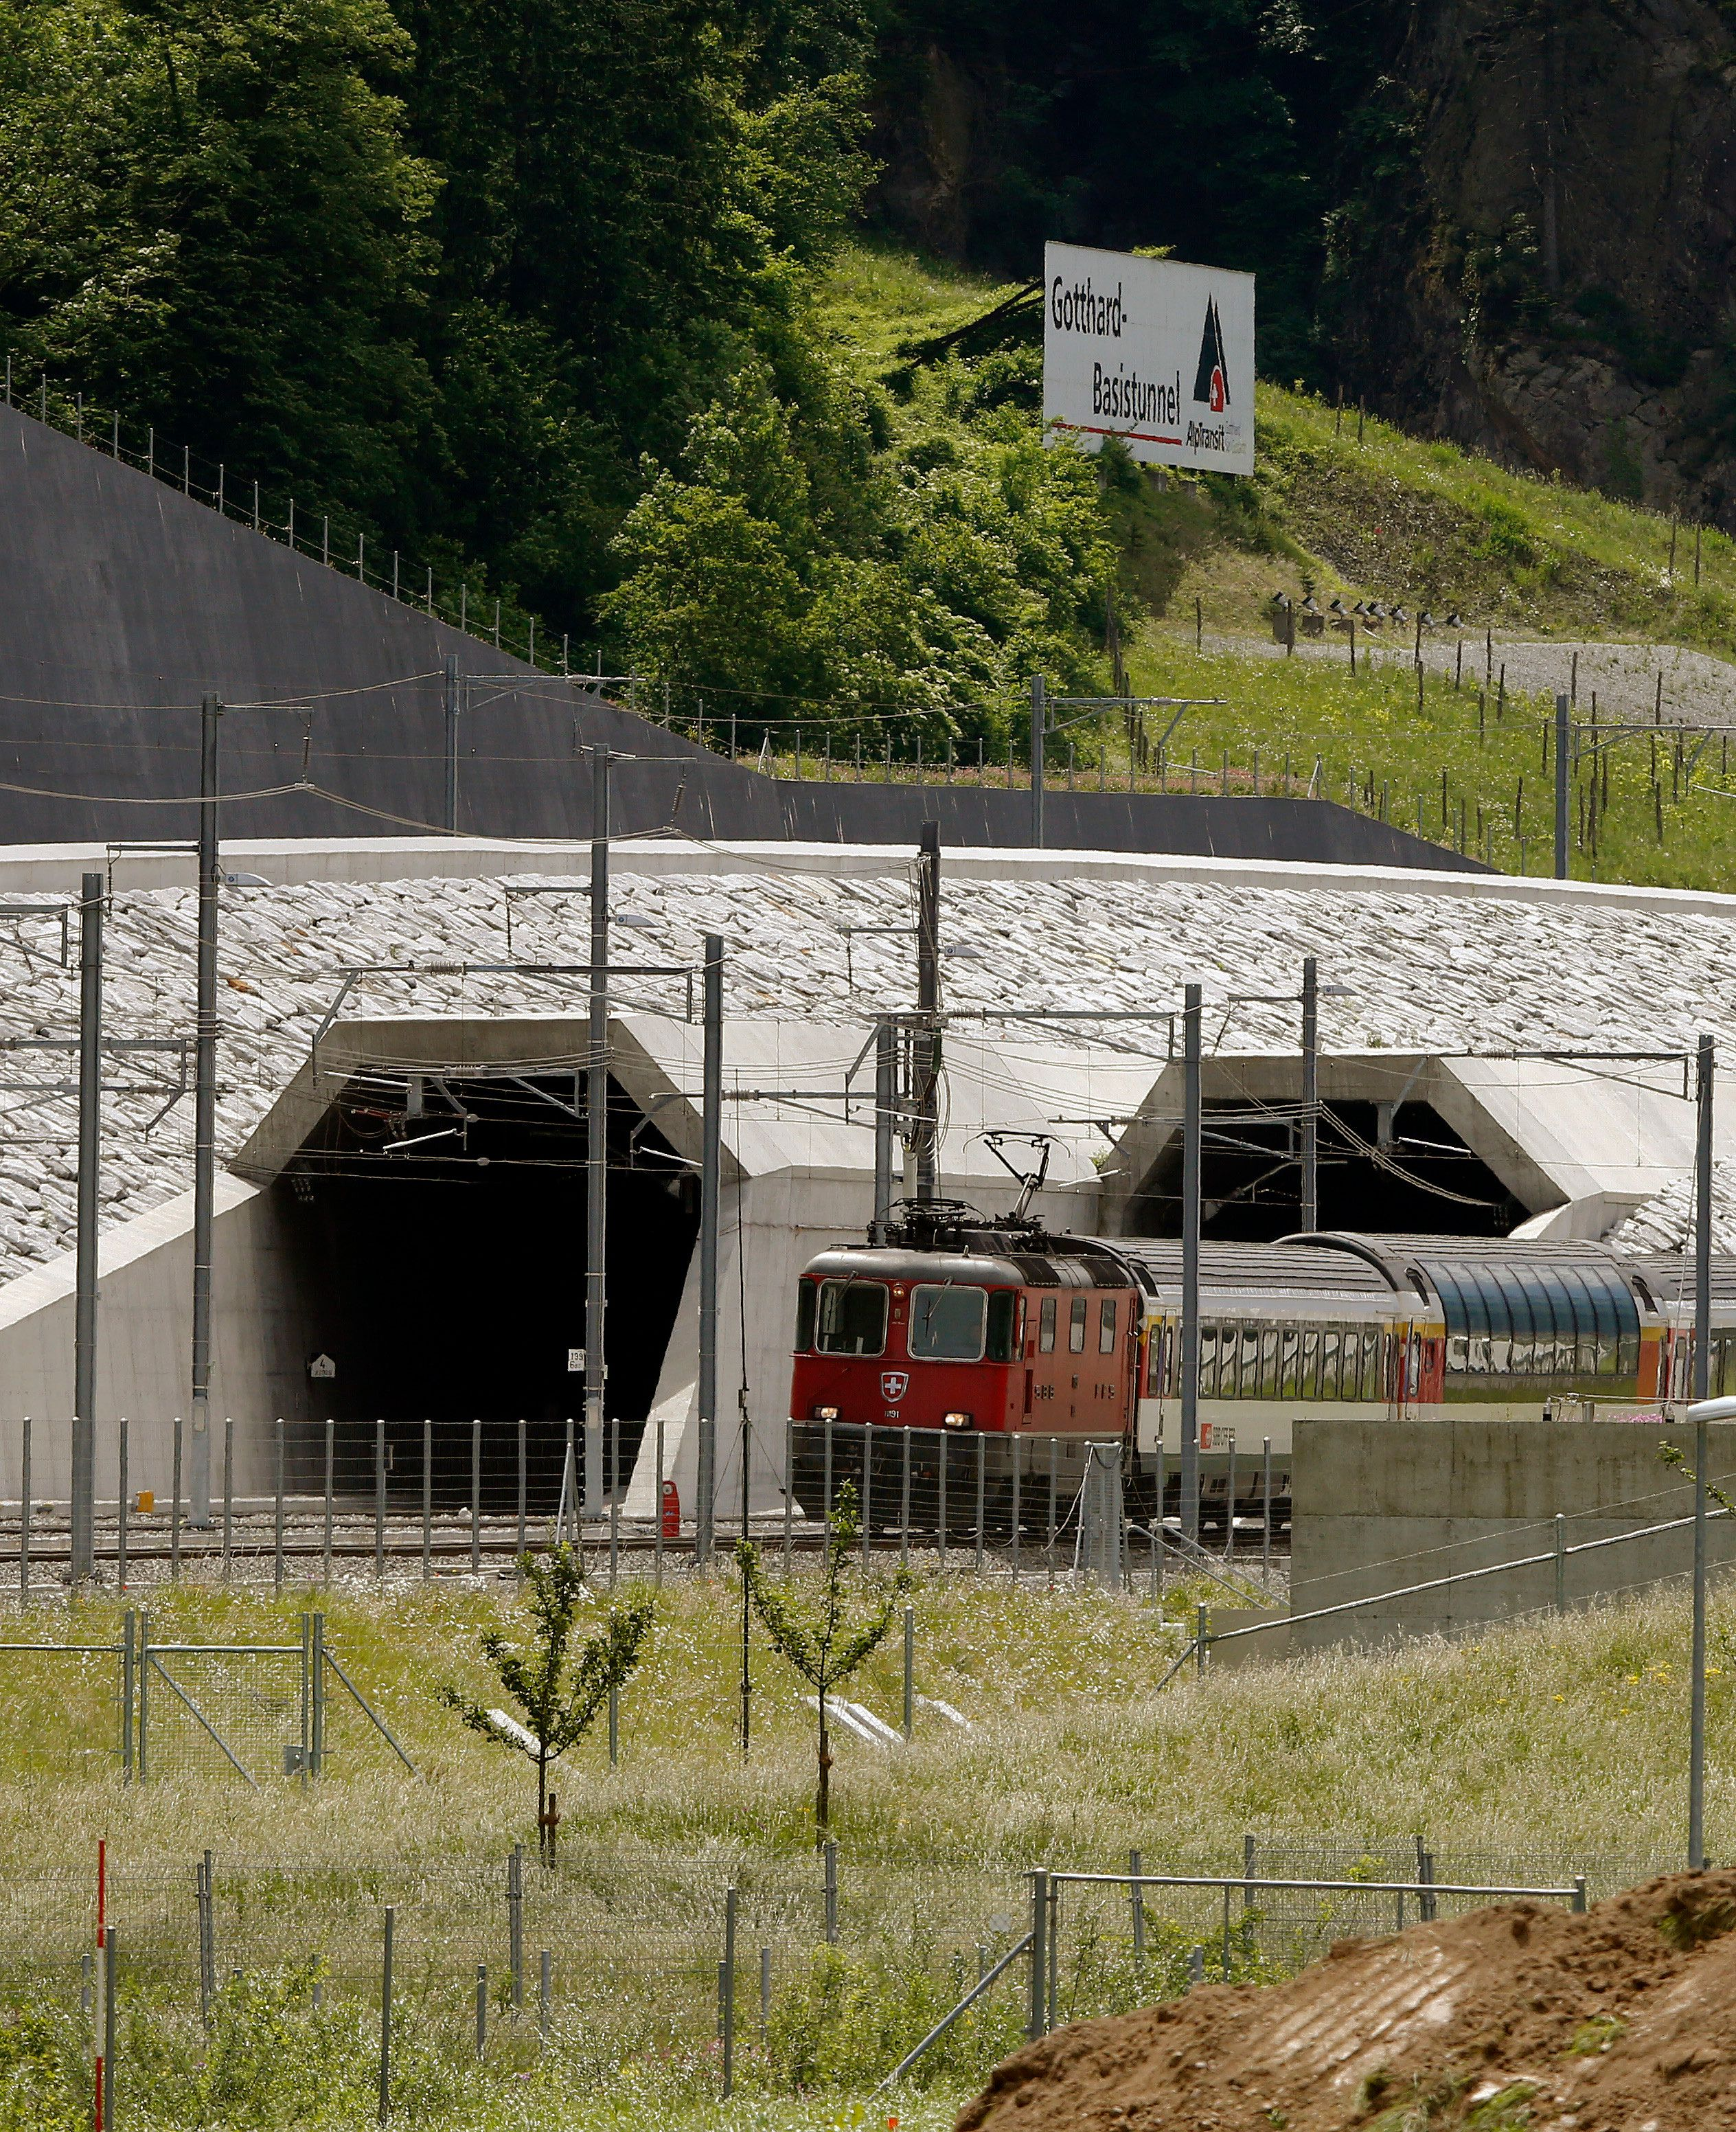 The train will cut passengers' travel time between Zurich and Lugano, just north of the Italian border, by about 45 min